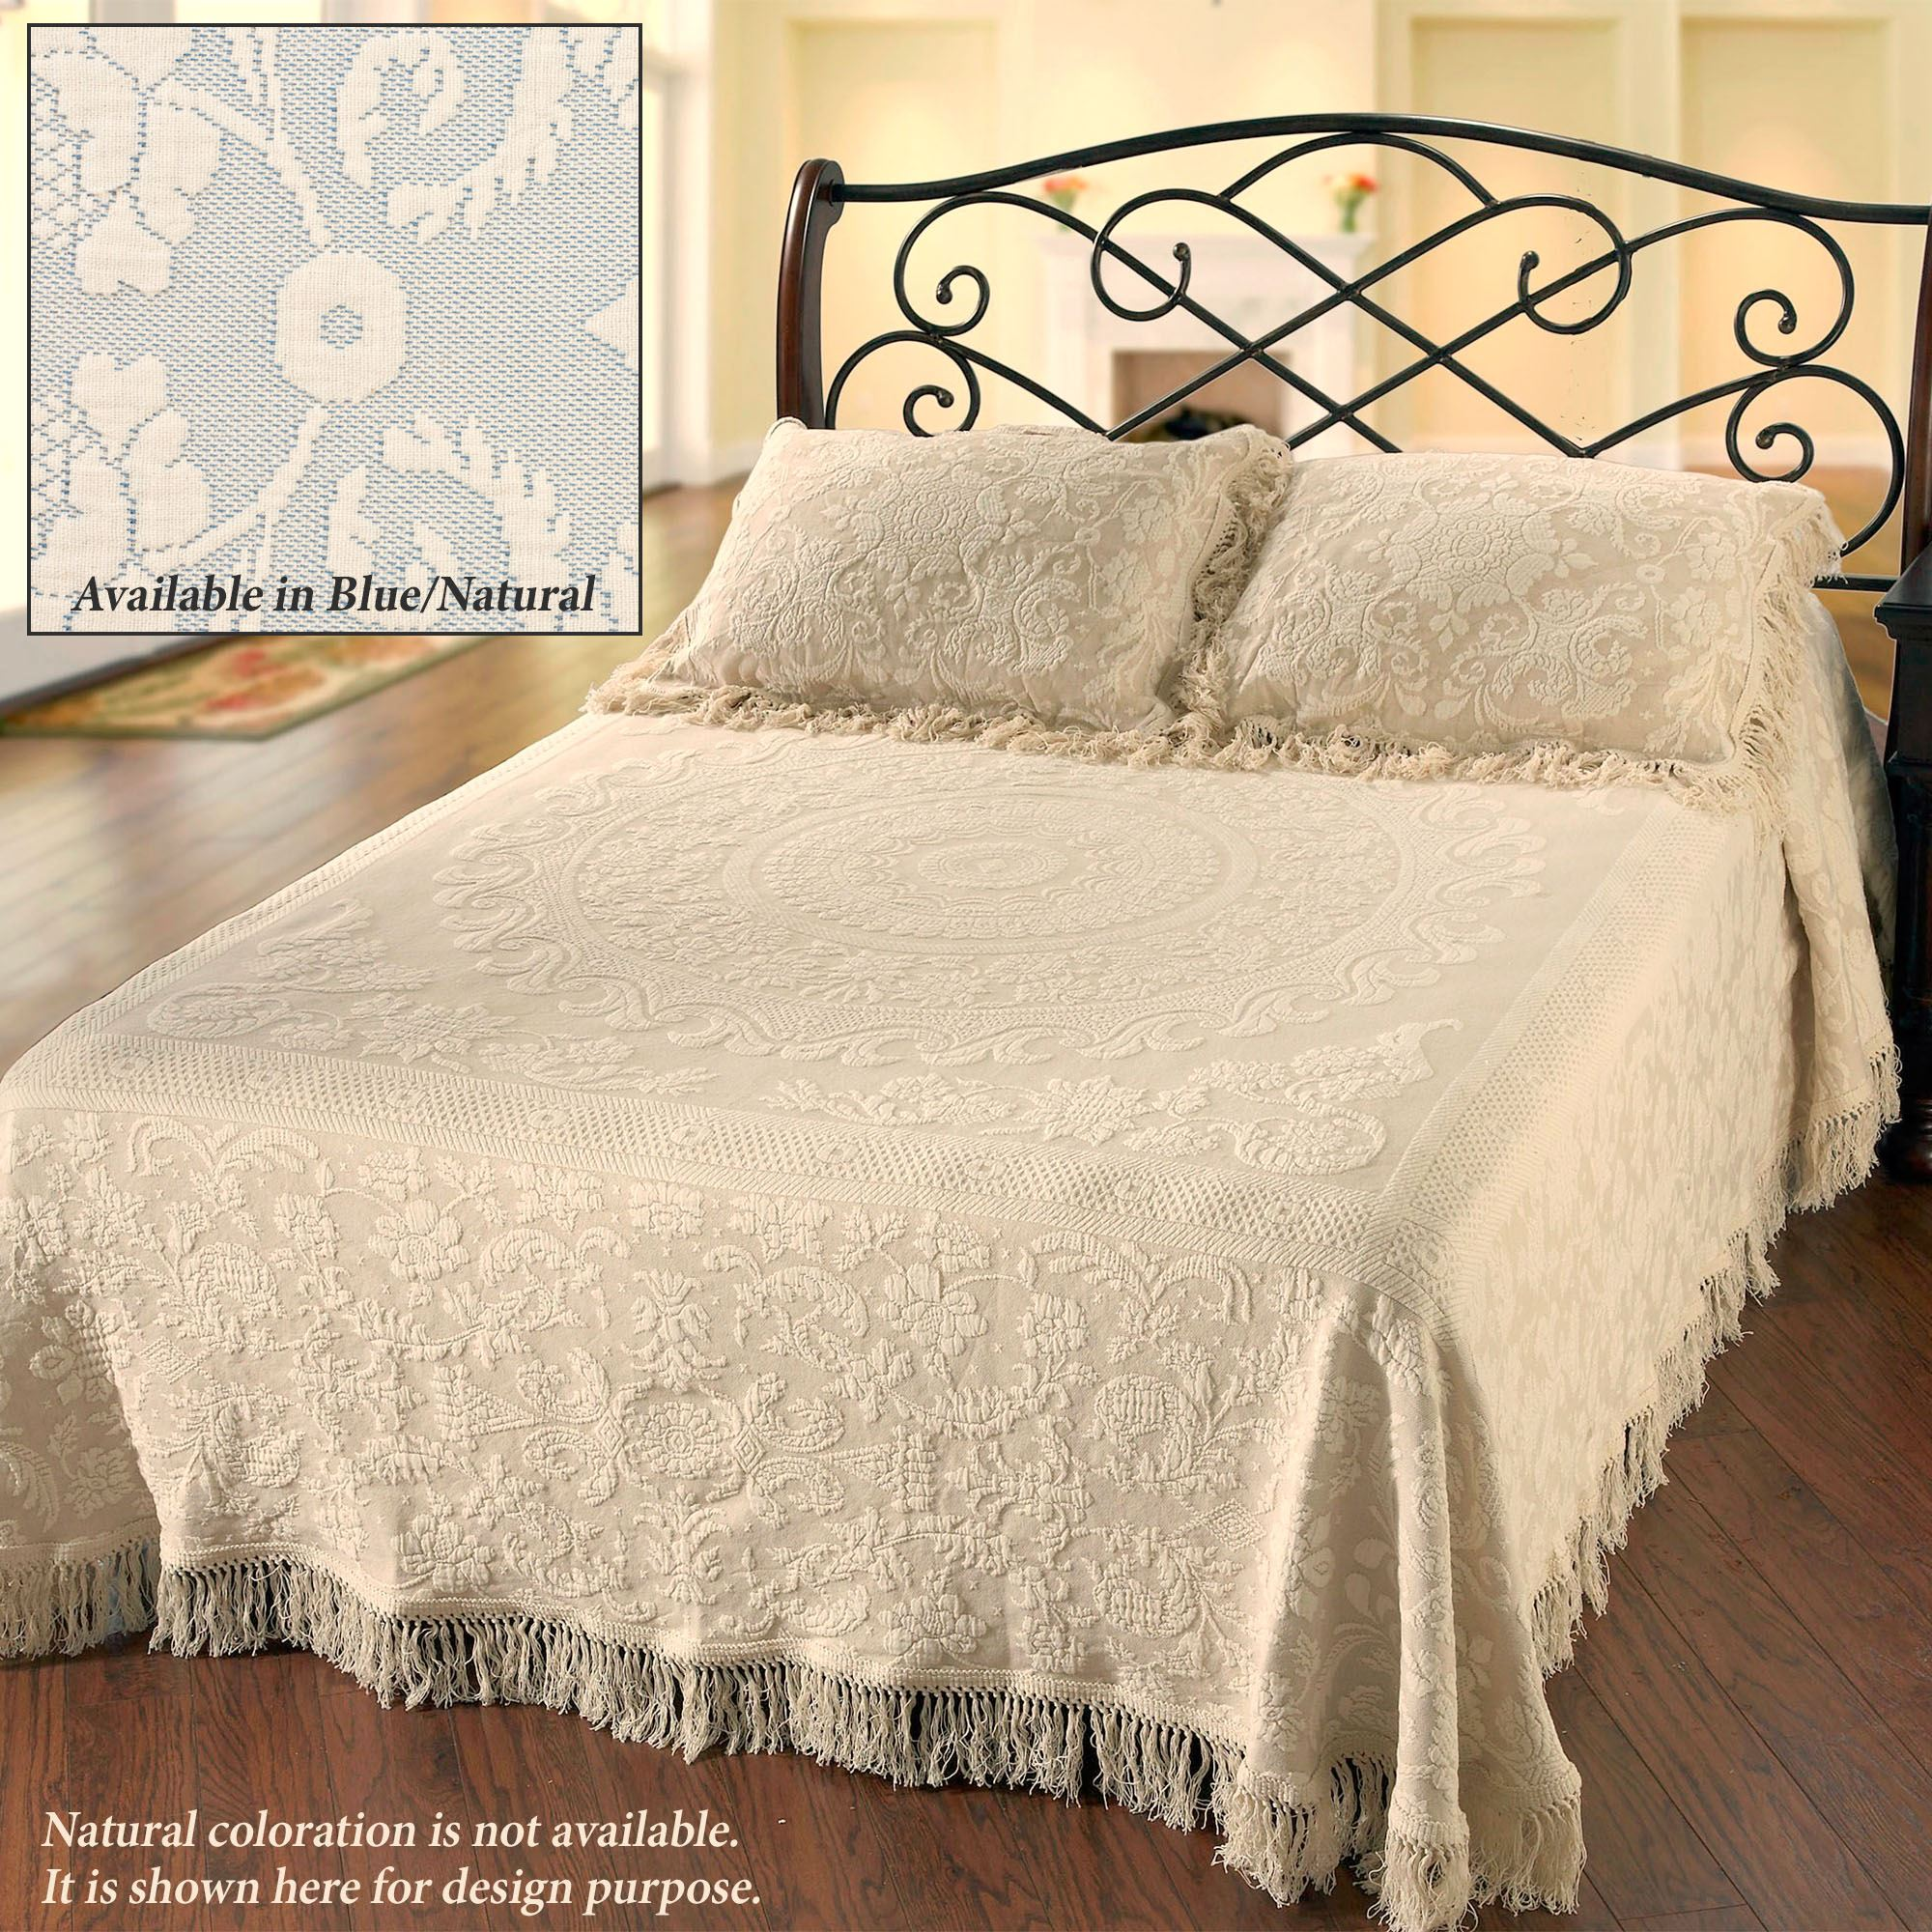 quilts with residence bedding matelasse and bedroom coverlet comforters inspiration attractive bed matelass what your white shams paisley is